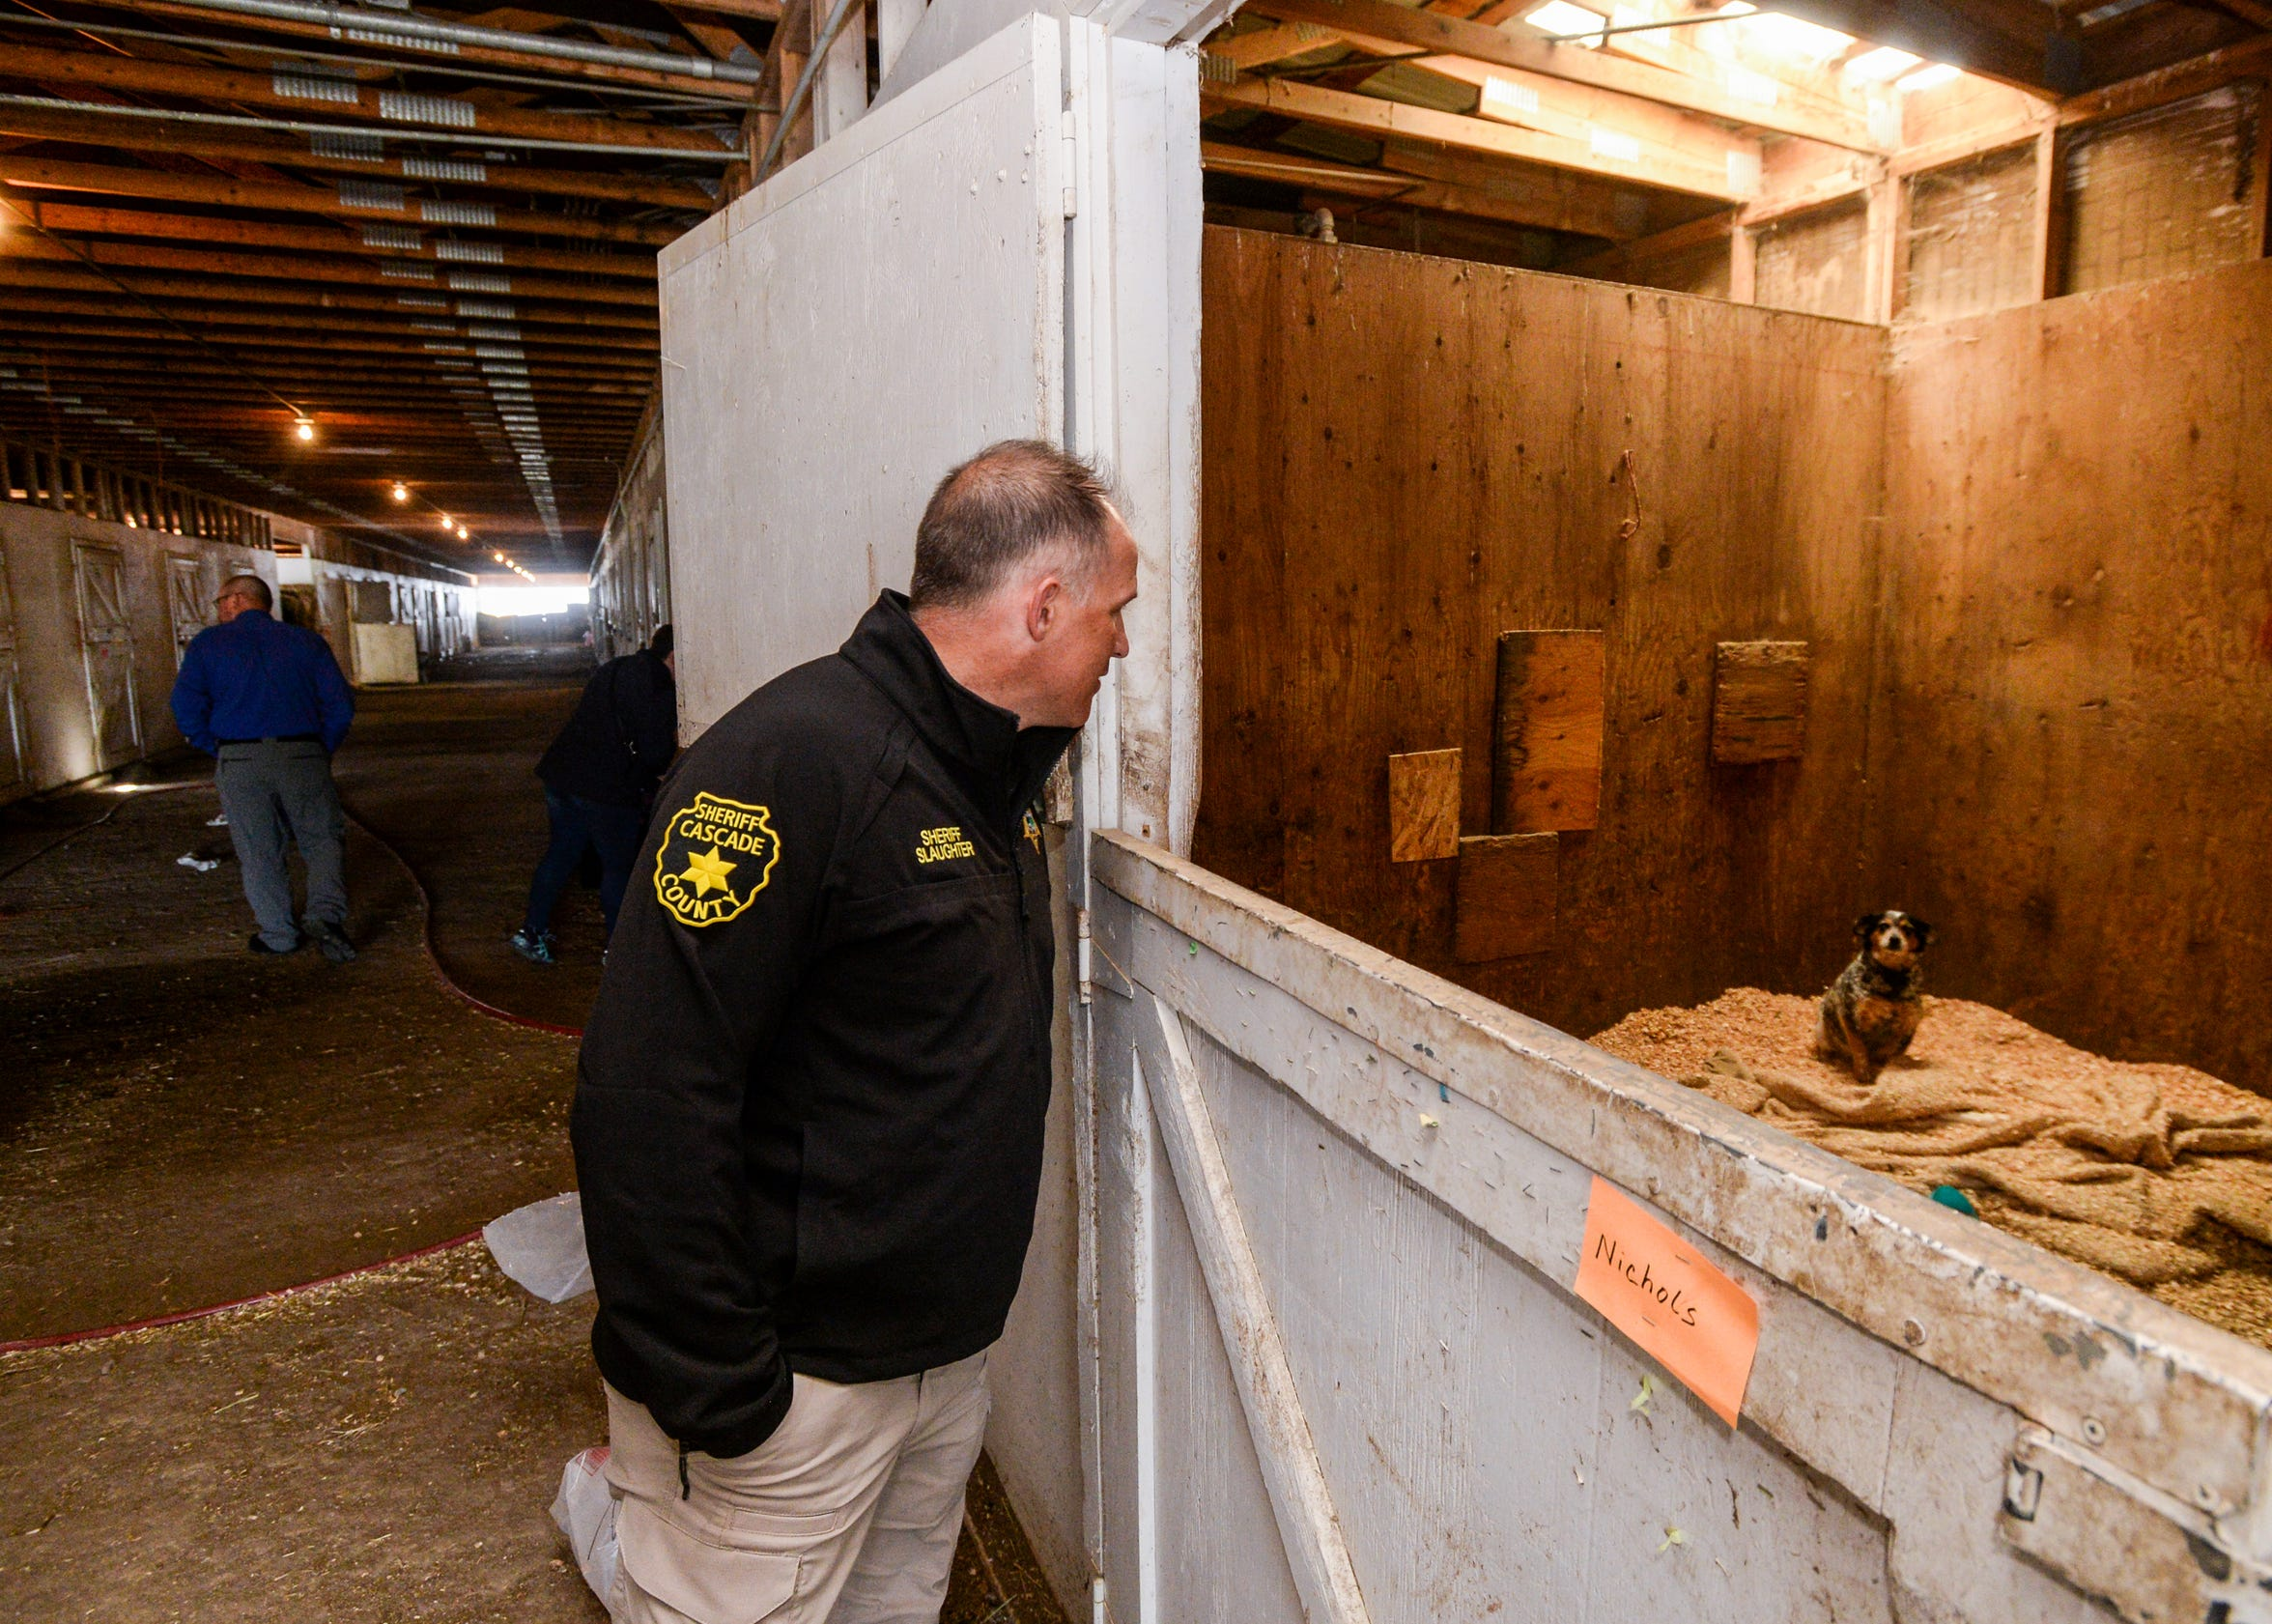 Cascade County Sheriff Jesse Slaughter tours a barn where his office is caring for animals seized from Pamela Jo Polejewski on charges of animal cruelty. 176 animals were seized from Polejewski after a fire gutted a trailer and outbuildings west of Great Falls in early May.